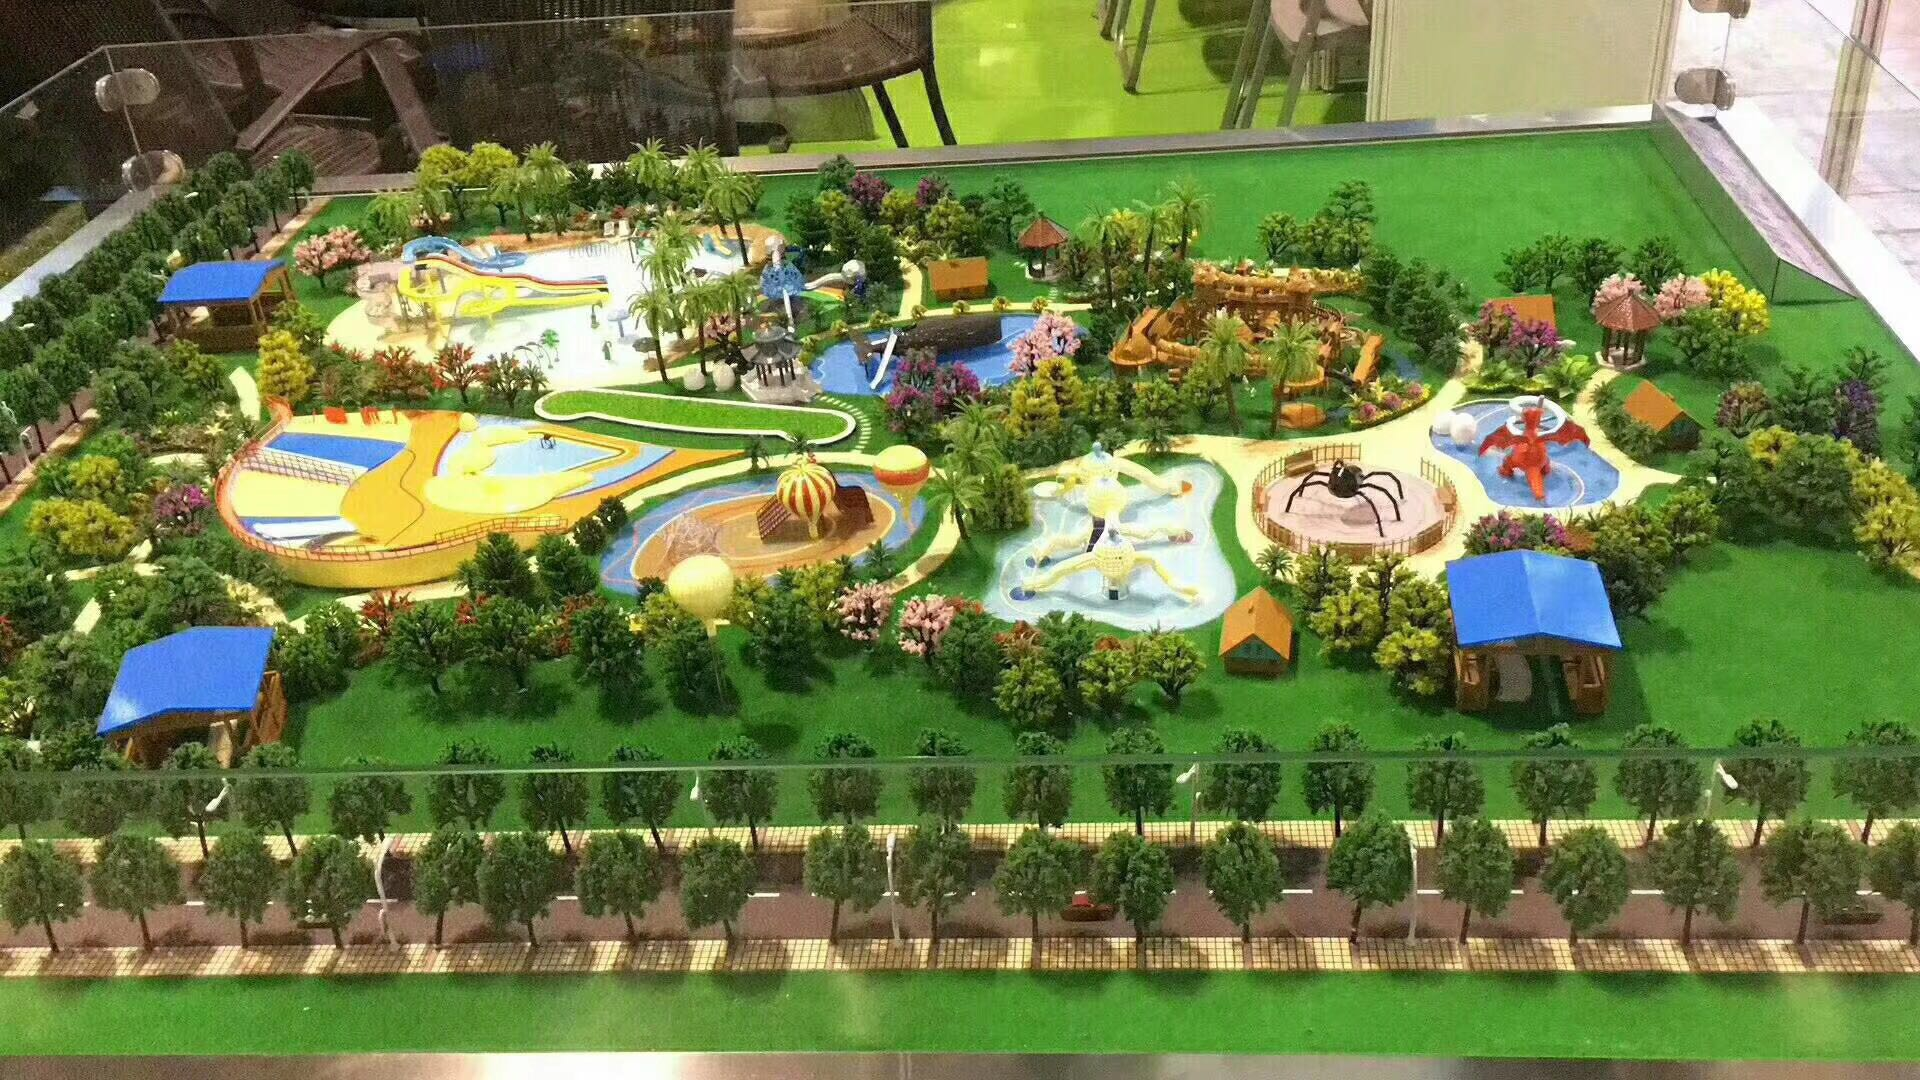 Exhibition 2018.5-29-5-31 in Shanghai: The green&Landscaping exhibition.